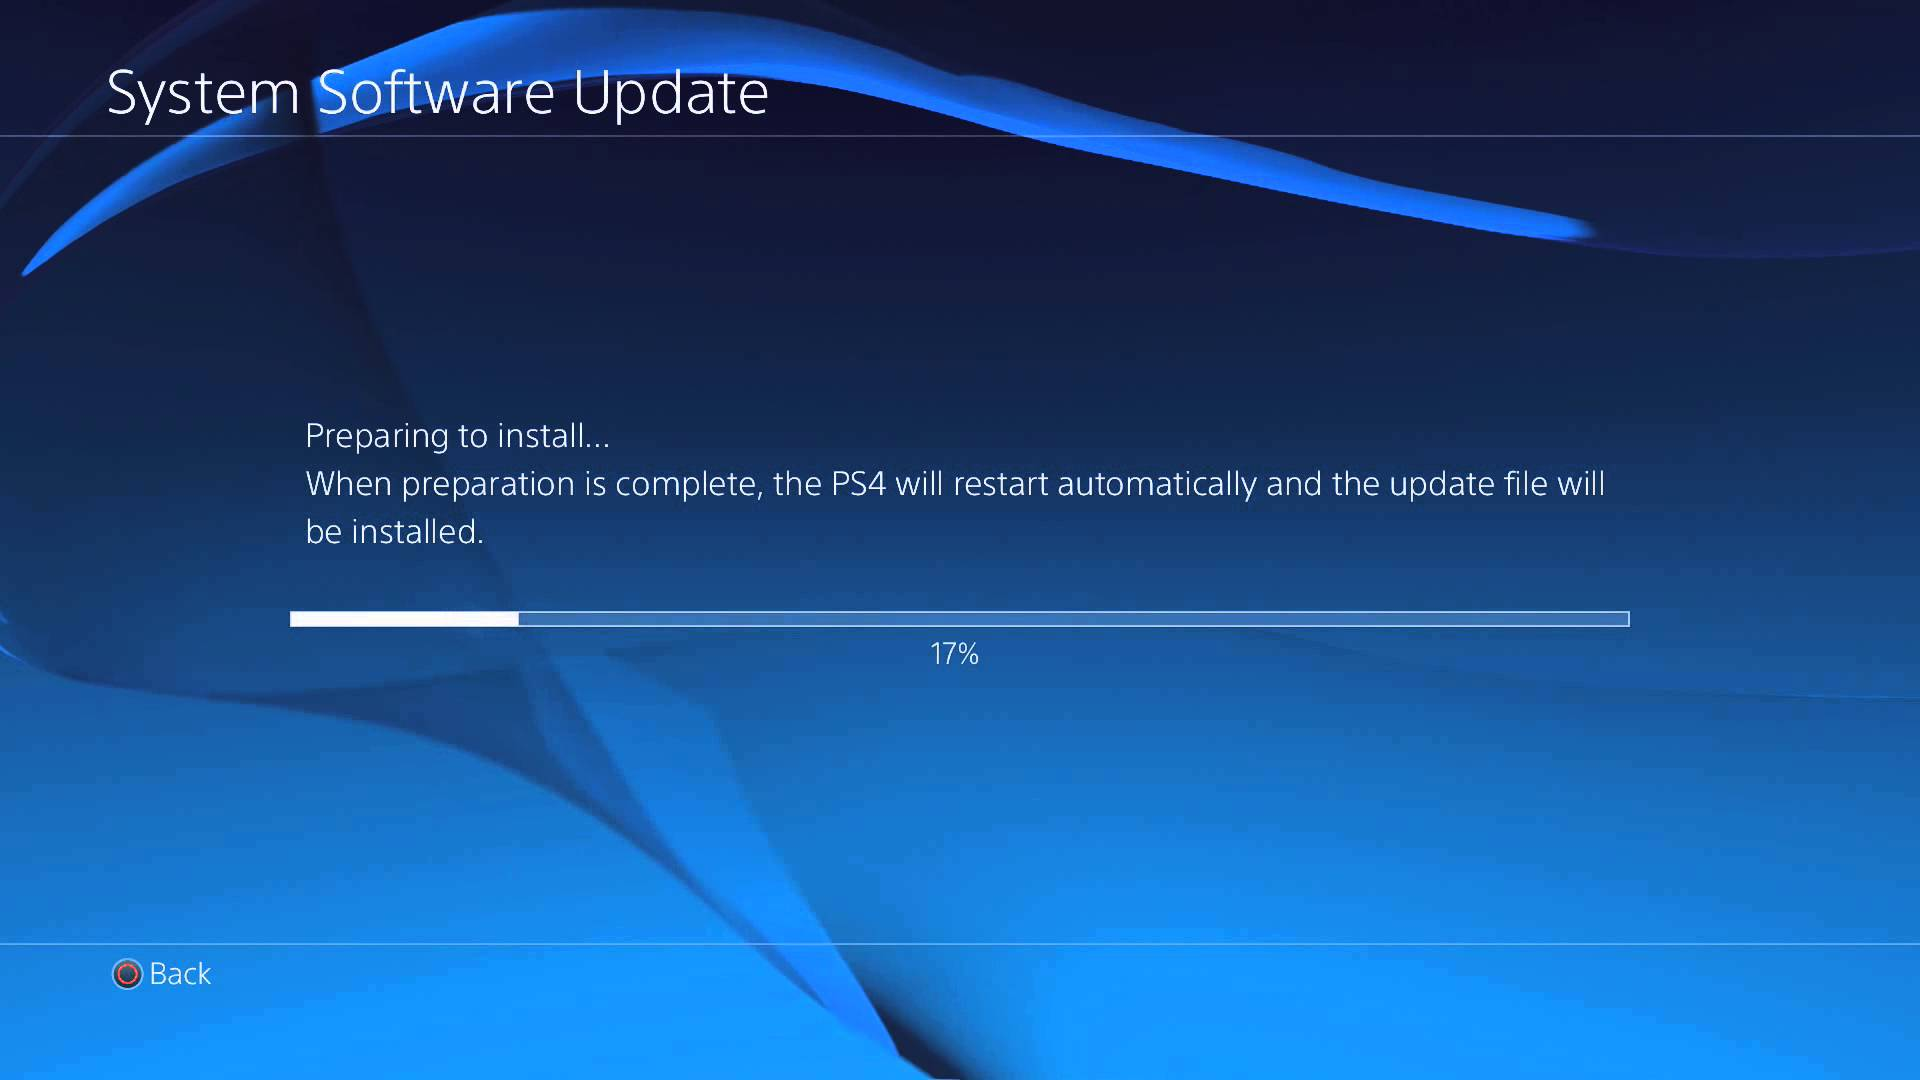 PlayStation 4: Firmware 8.00 released with new avatars, revamped Party & Messages & some QoL improvements - Some changes not received well by community